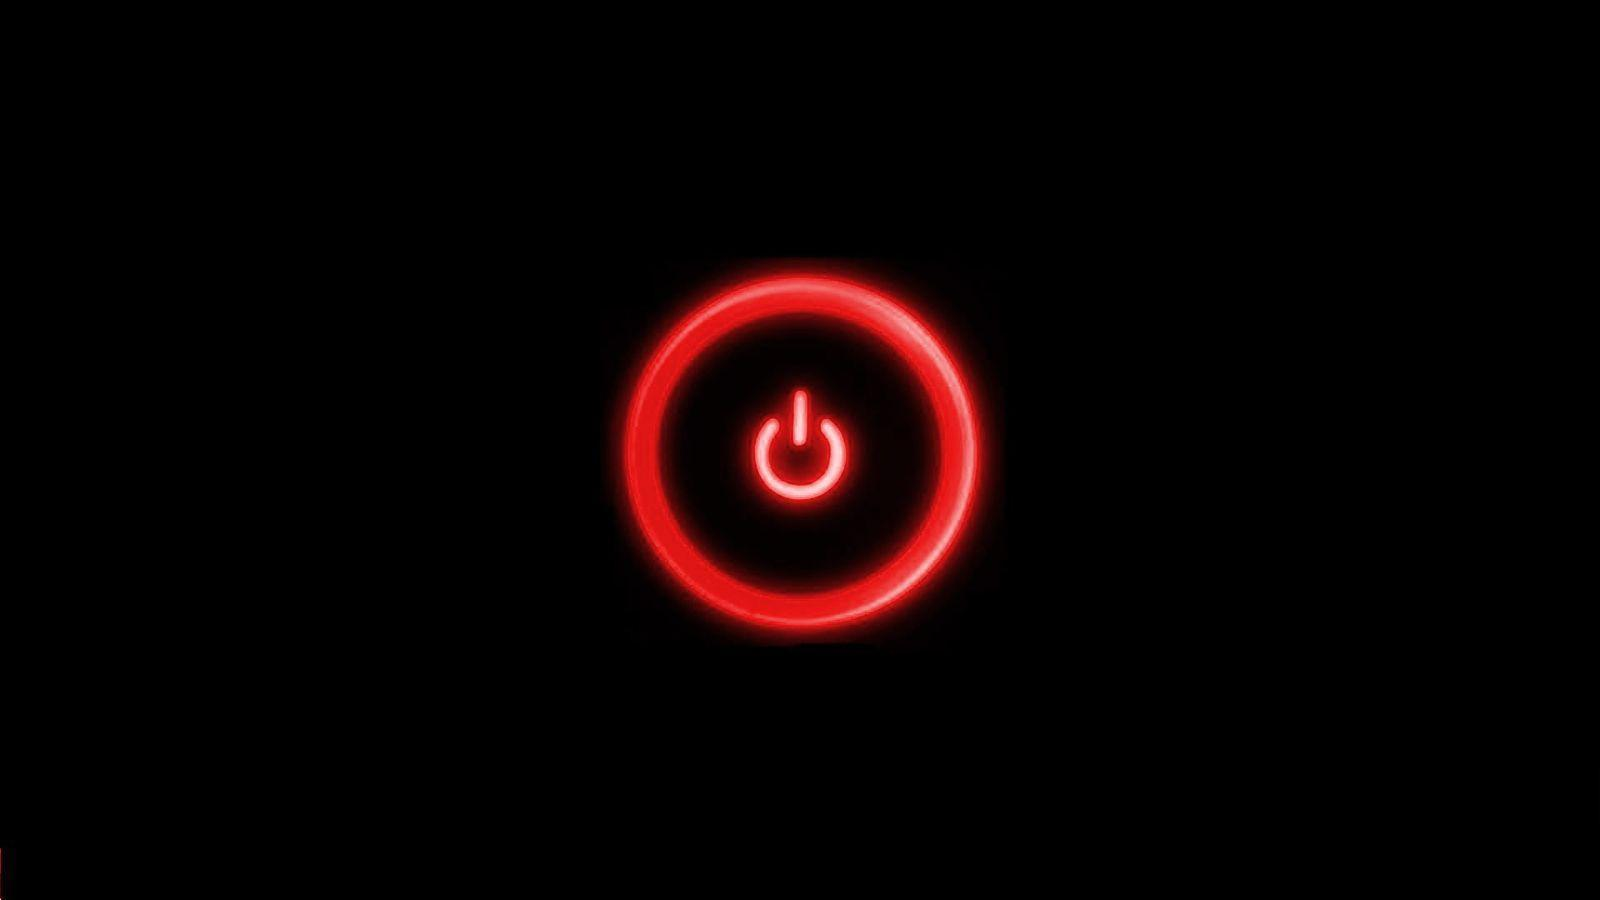 Power Button Wallpapers - Wallpaper Cave